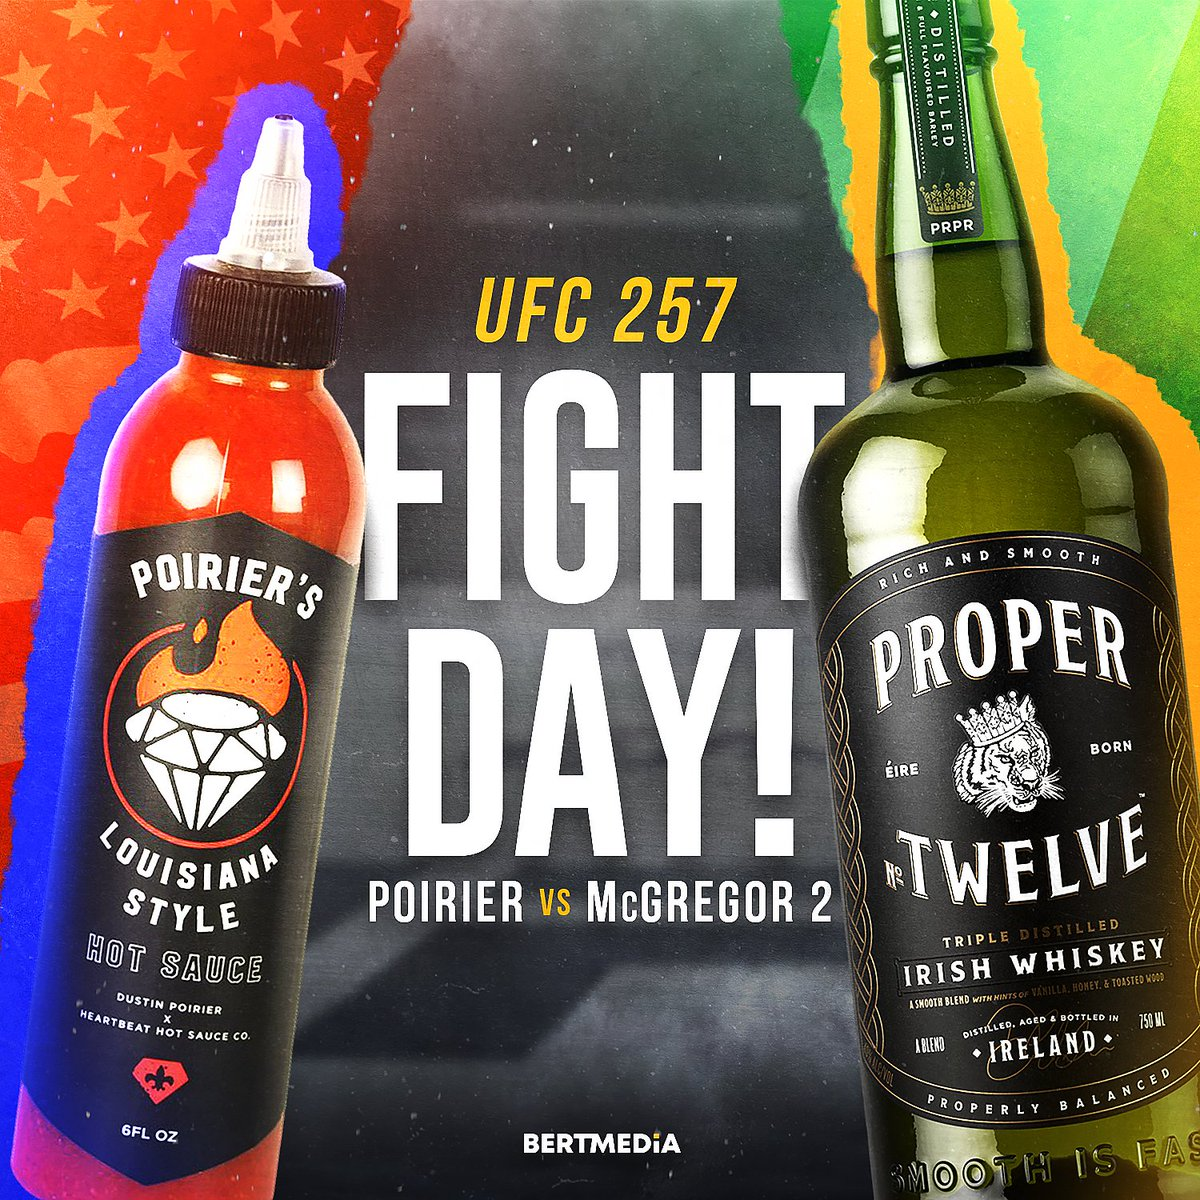 FIGHT DAY IS HERE!!! #UFC257 🇺🇸🇮🇪 @TheNotoriousMMA @DustinPoirier